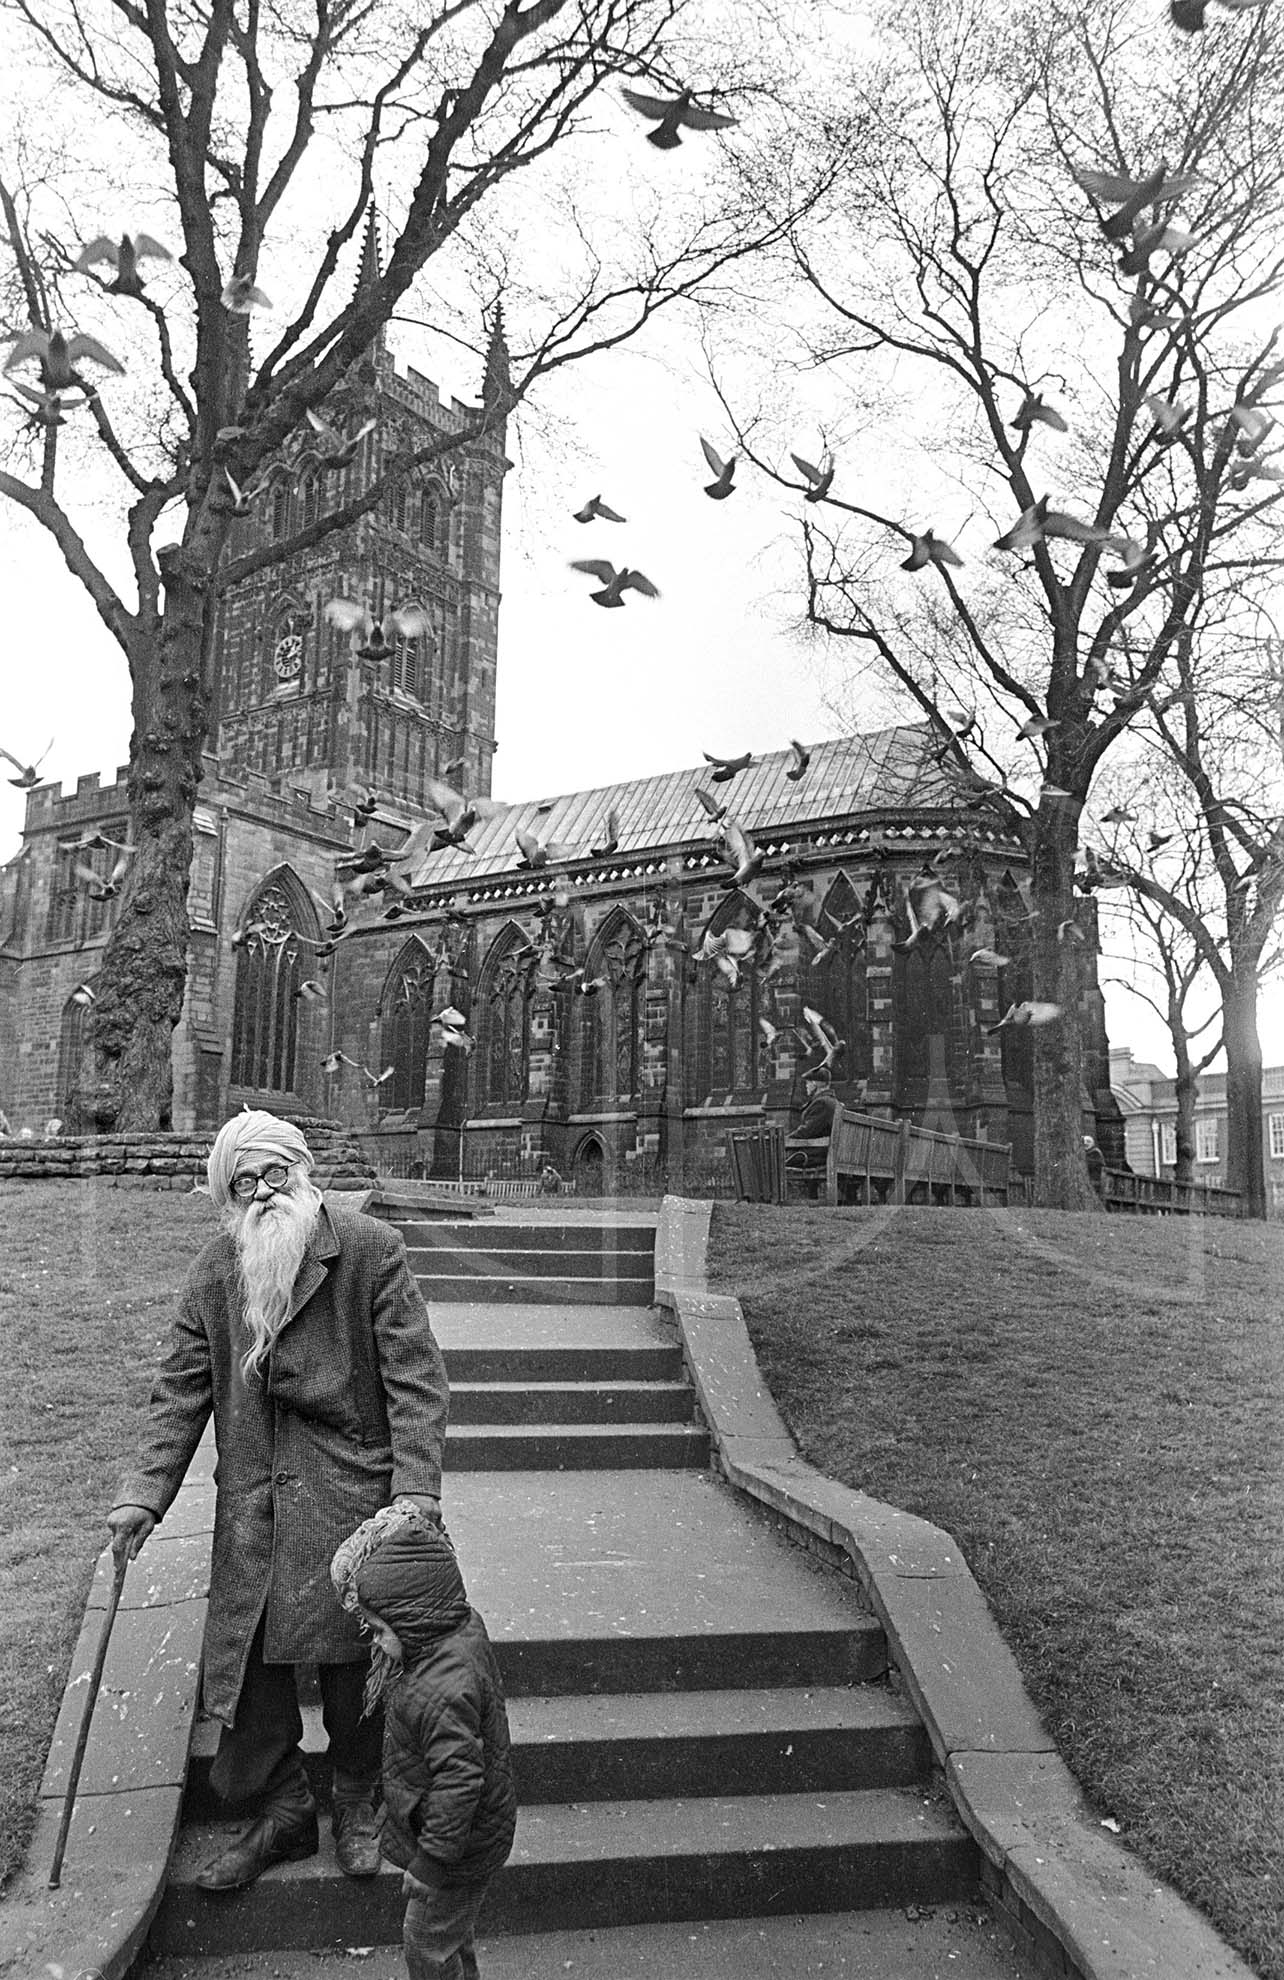 Sikh grandfather and grandson by St Peter's church Wolverhampton  (1976)